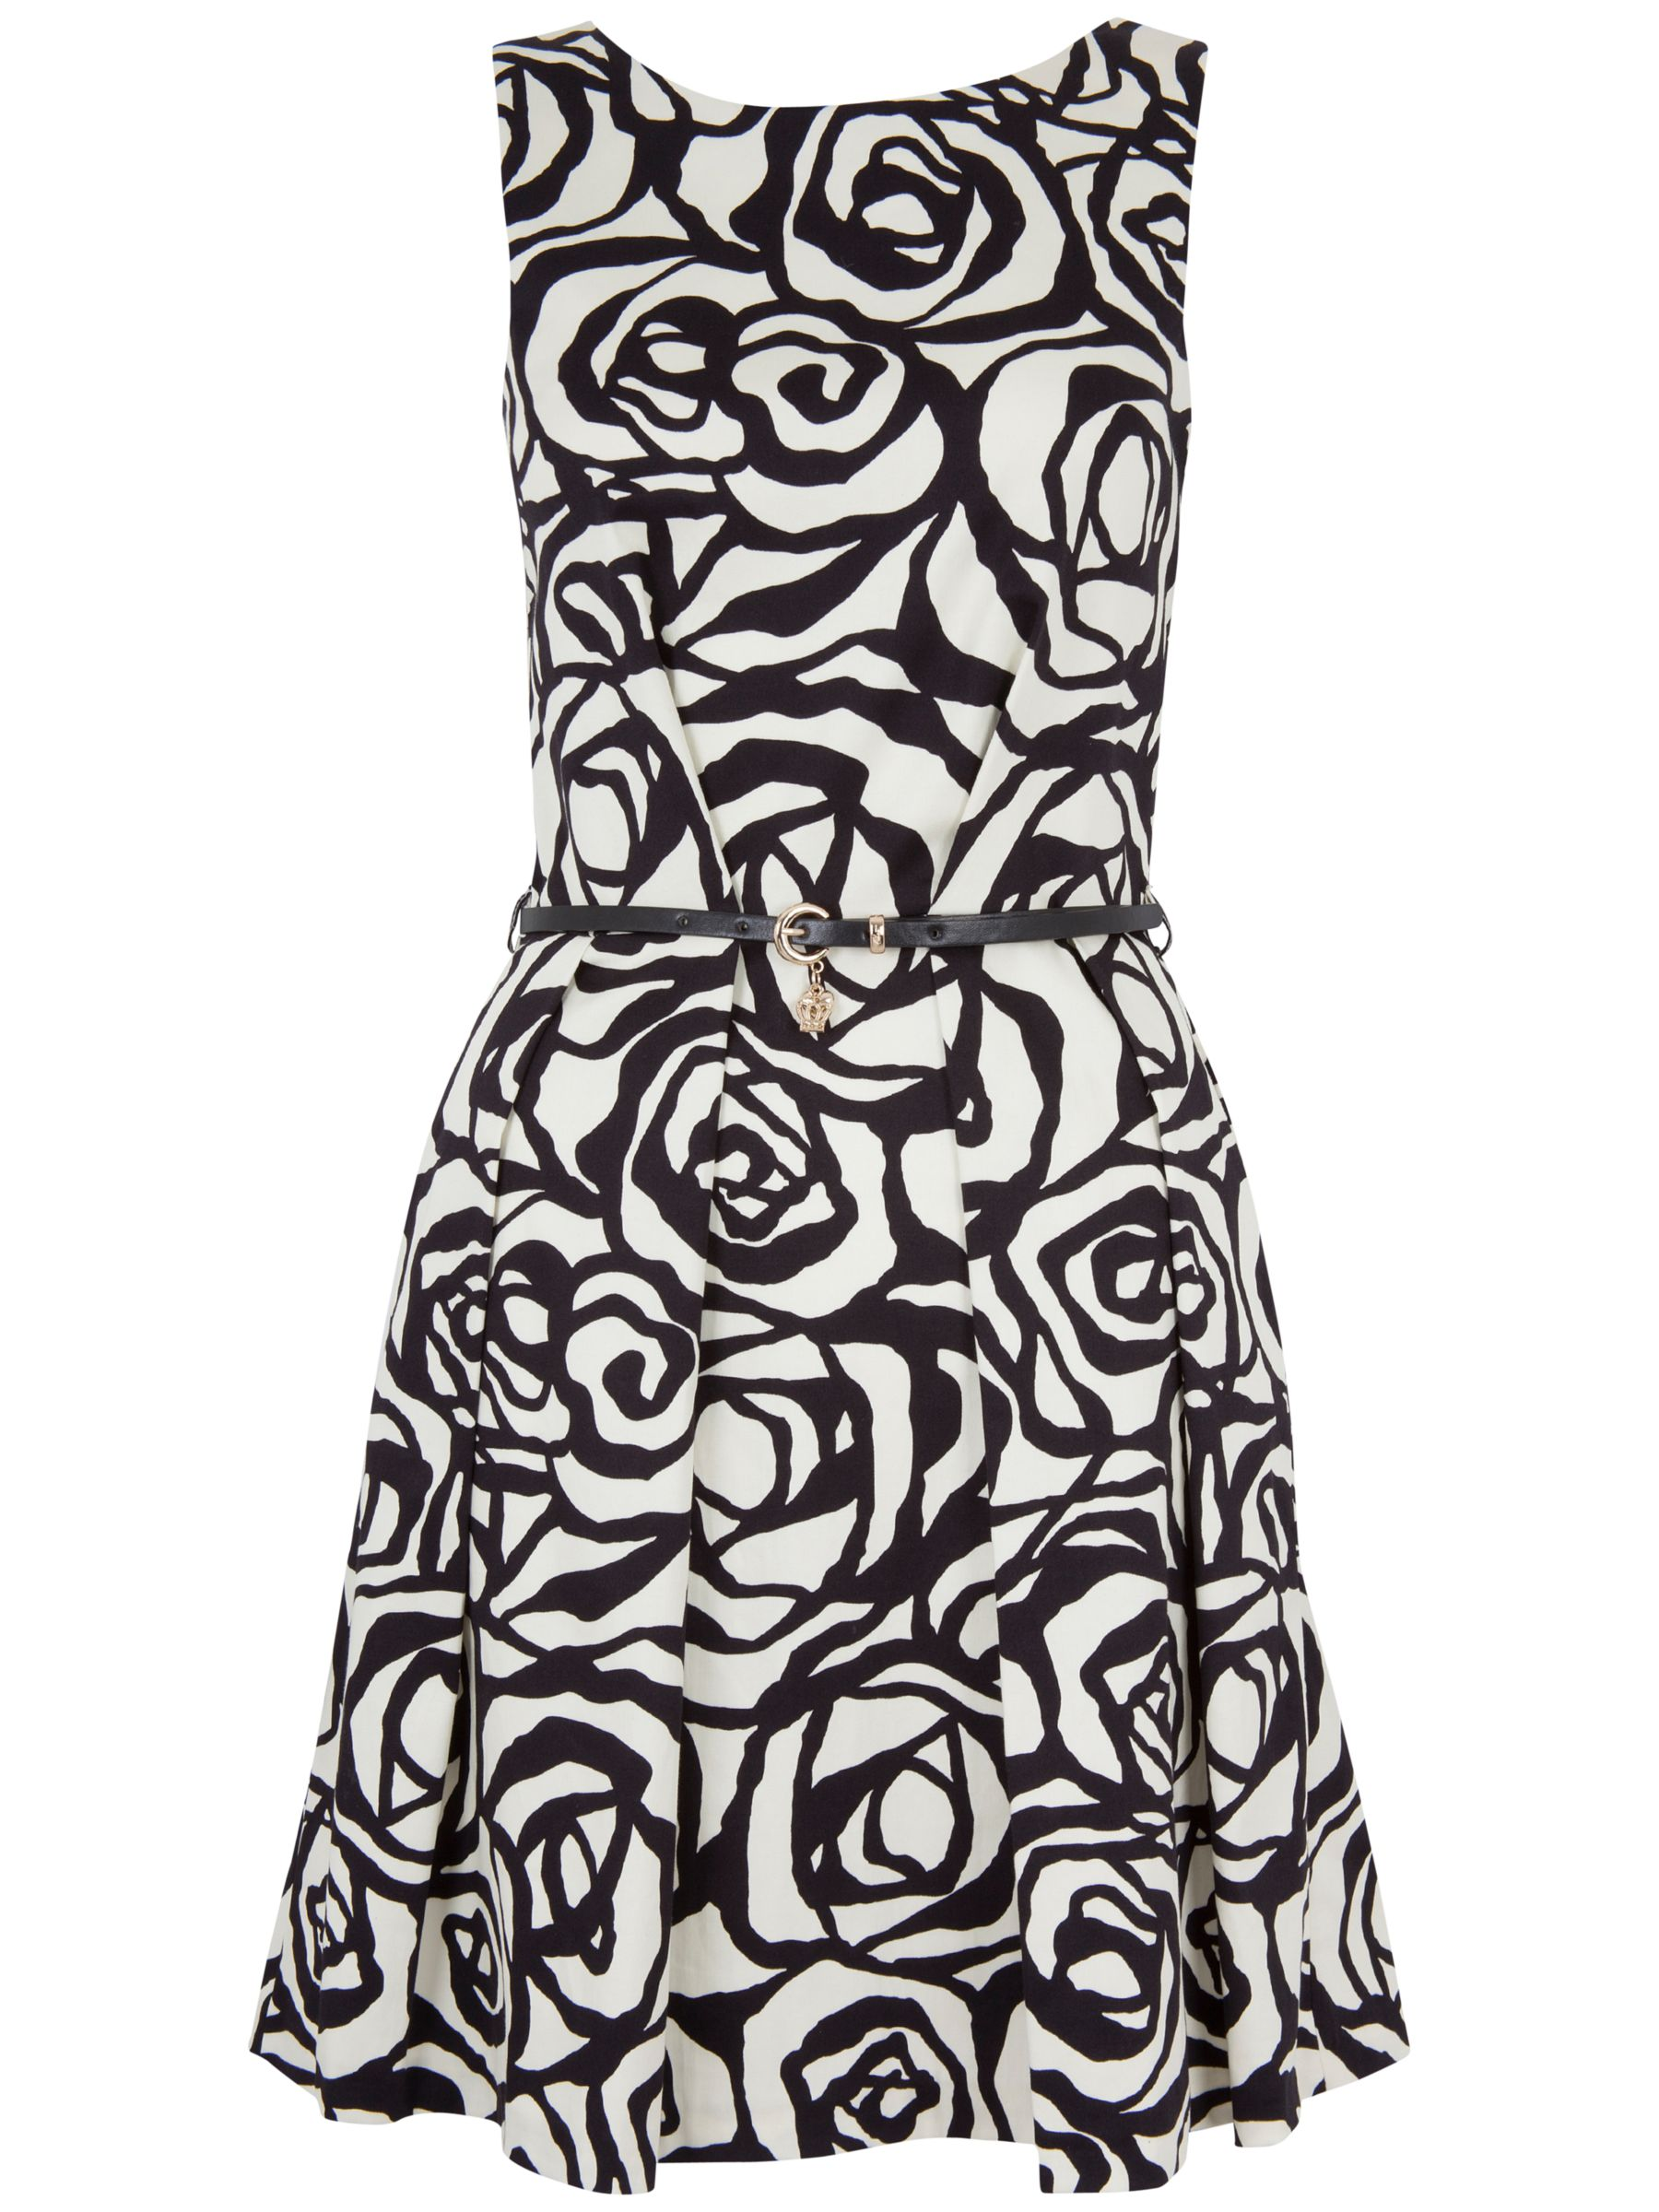 closet floral v back cotton dress white/black, closet, floral, back, cotton, dress, white/black, 8|14|10|12|16, clearance, womenswear offers, womens dresses offers, winter sun, women, inactive womenswear, new reductions, womens dresses, buy now save for spring, special offers, 1801116